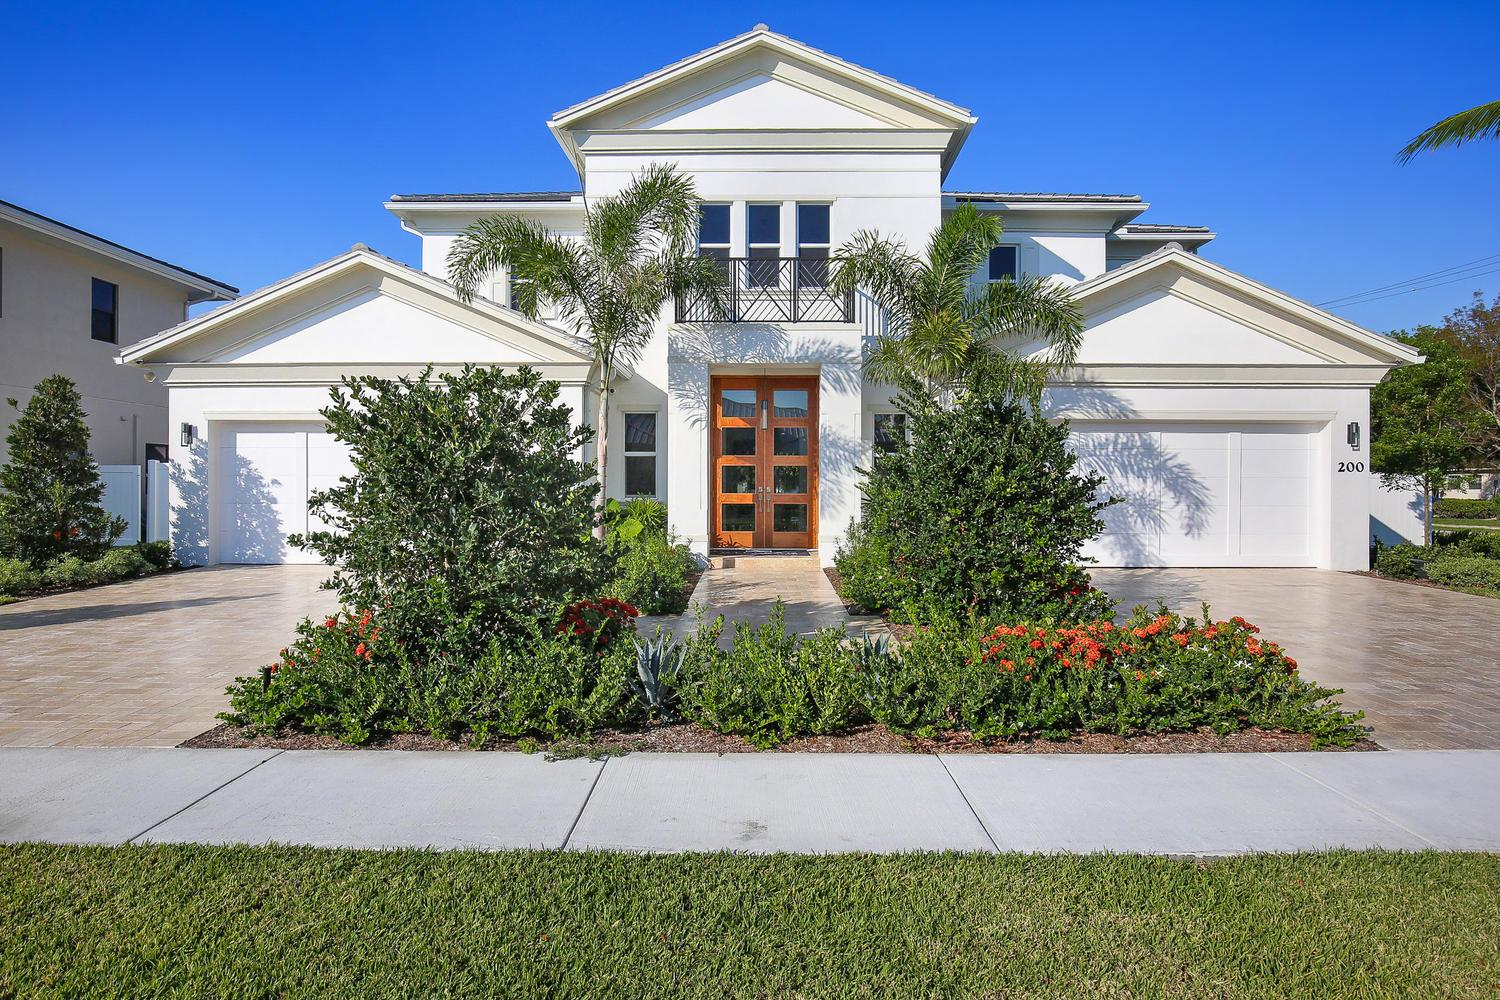 Additional photo for property listing at Boca Collection - Villa Valle  Boca Raton, Florida 33427 United States